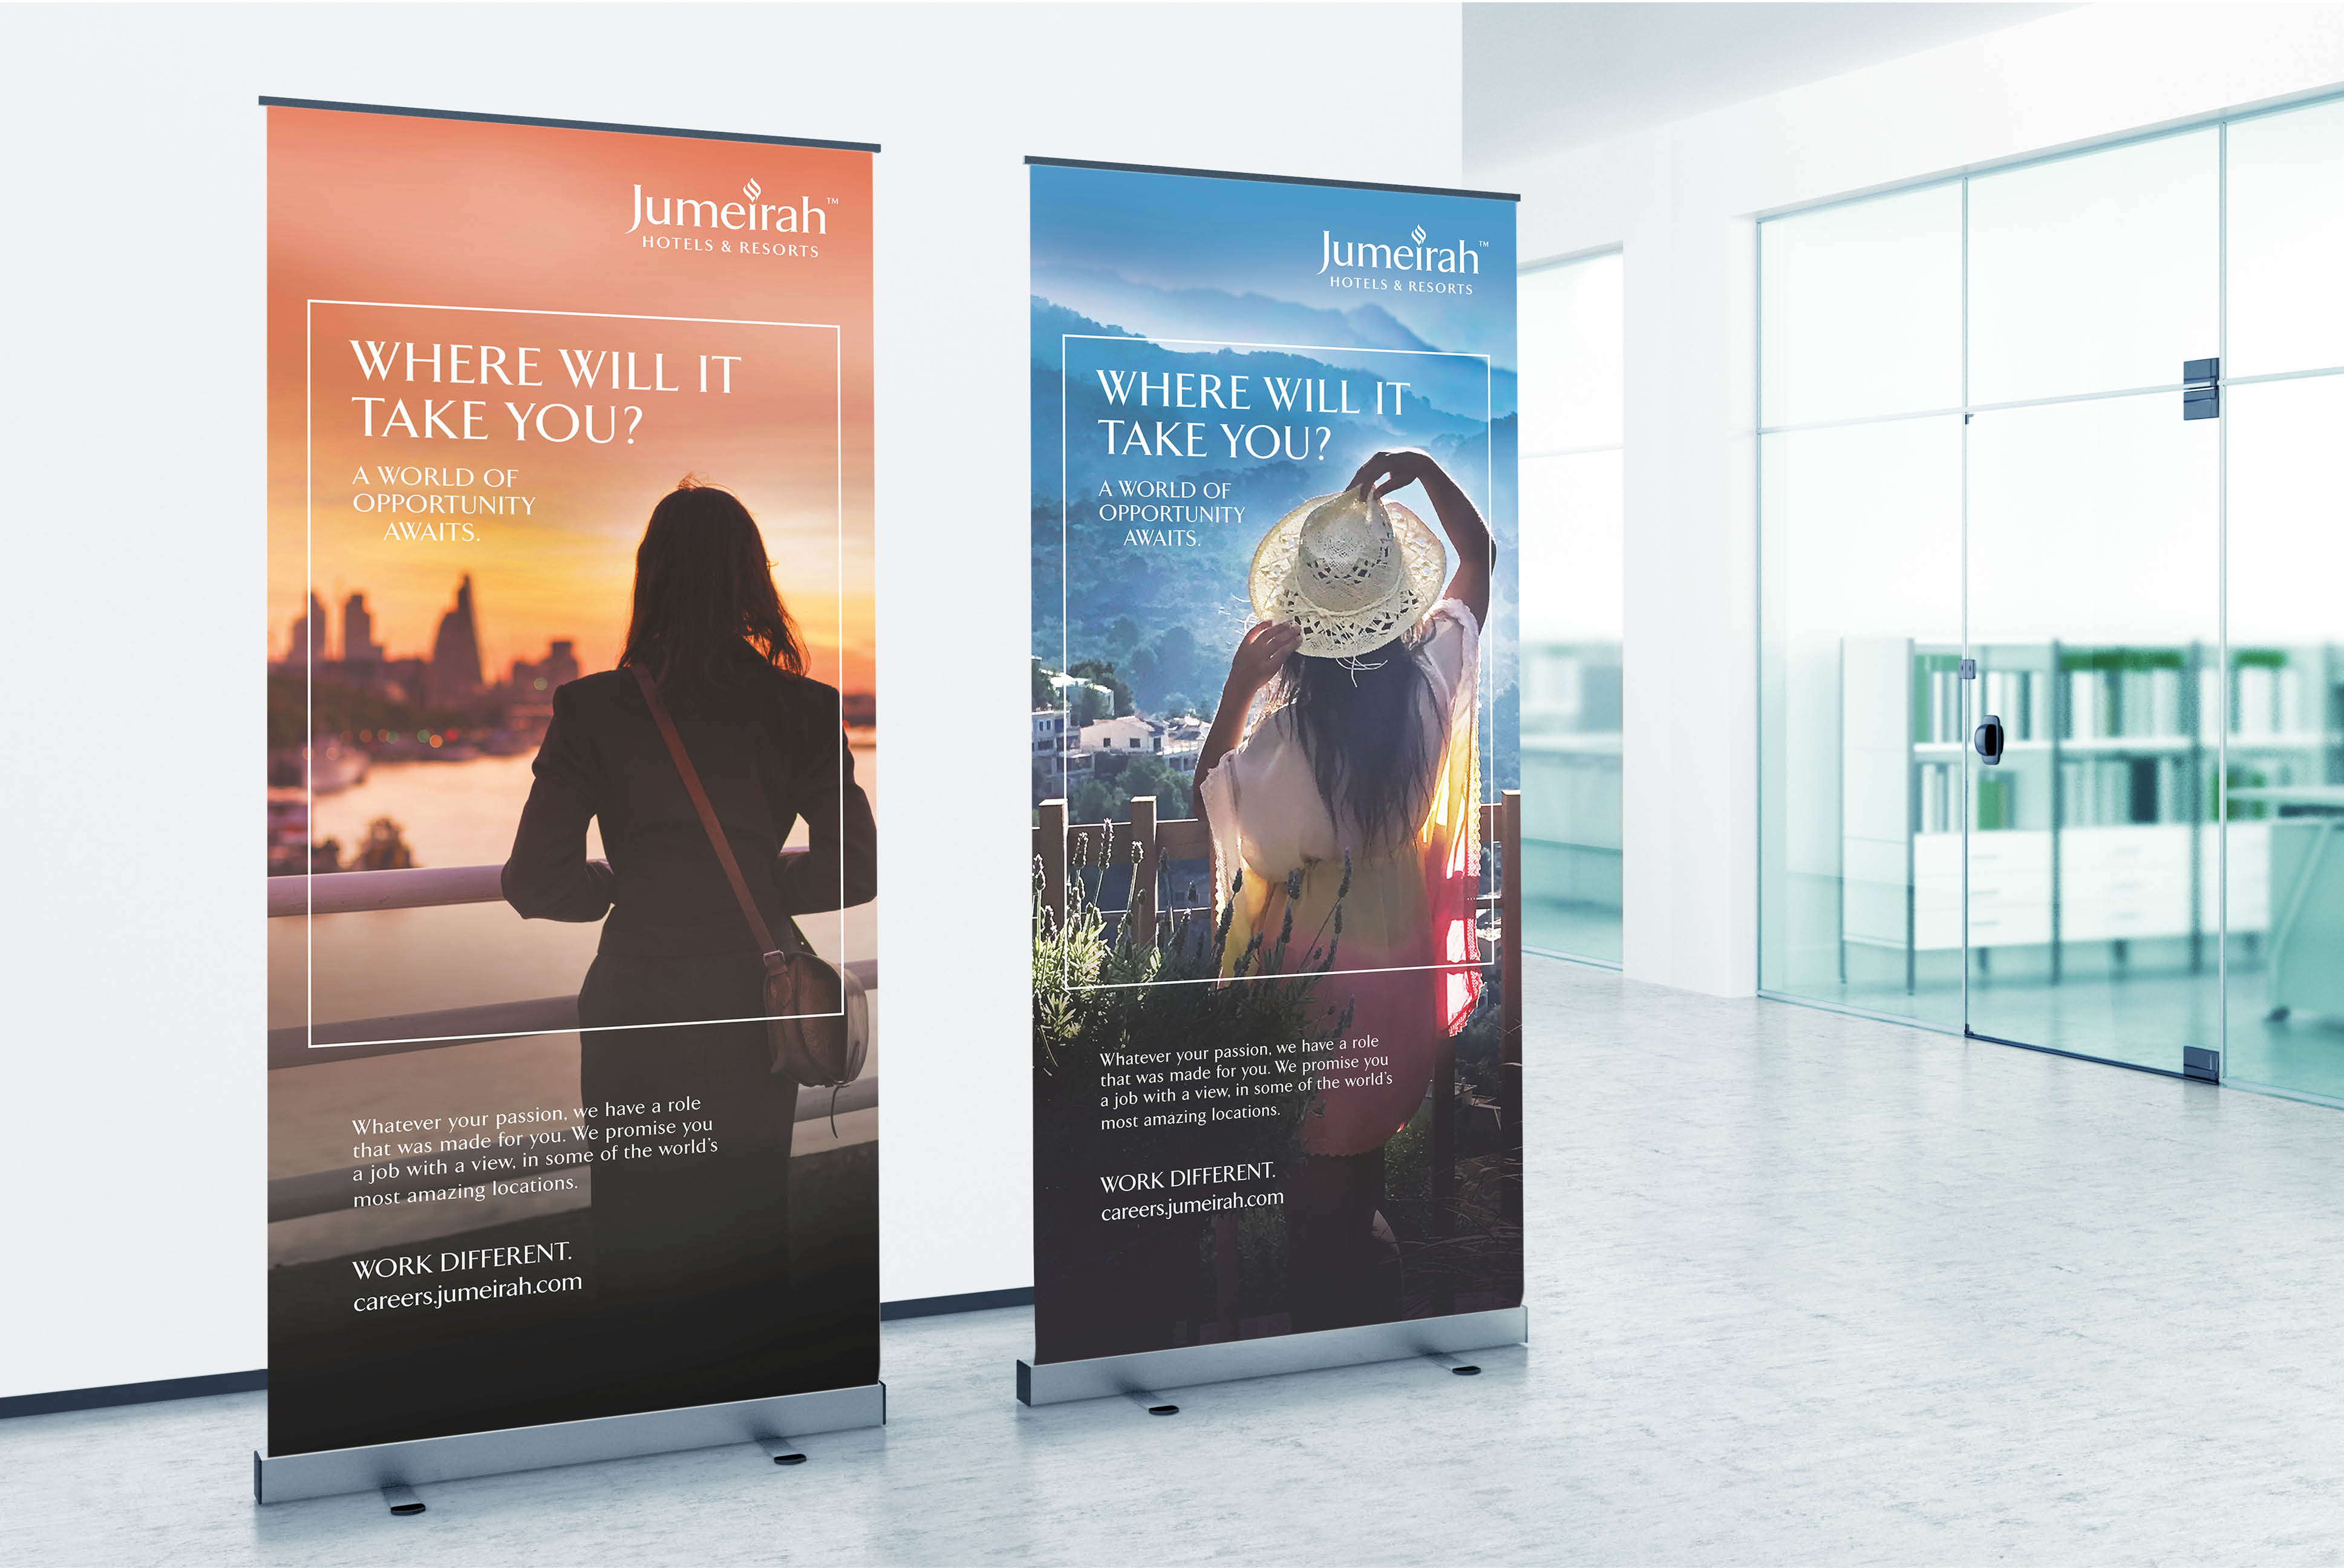 Jumeirah HR pull-up banners   Jumeirah Hotels   Advertising and Creative Strategy   Independent Marketing - IM London